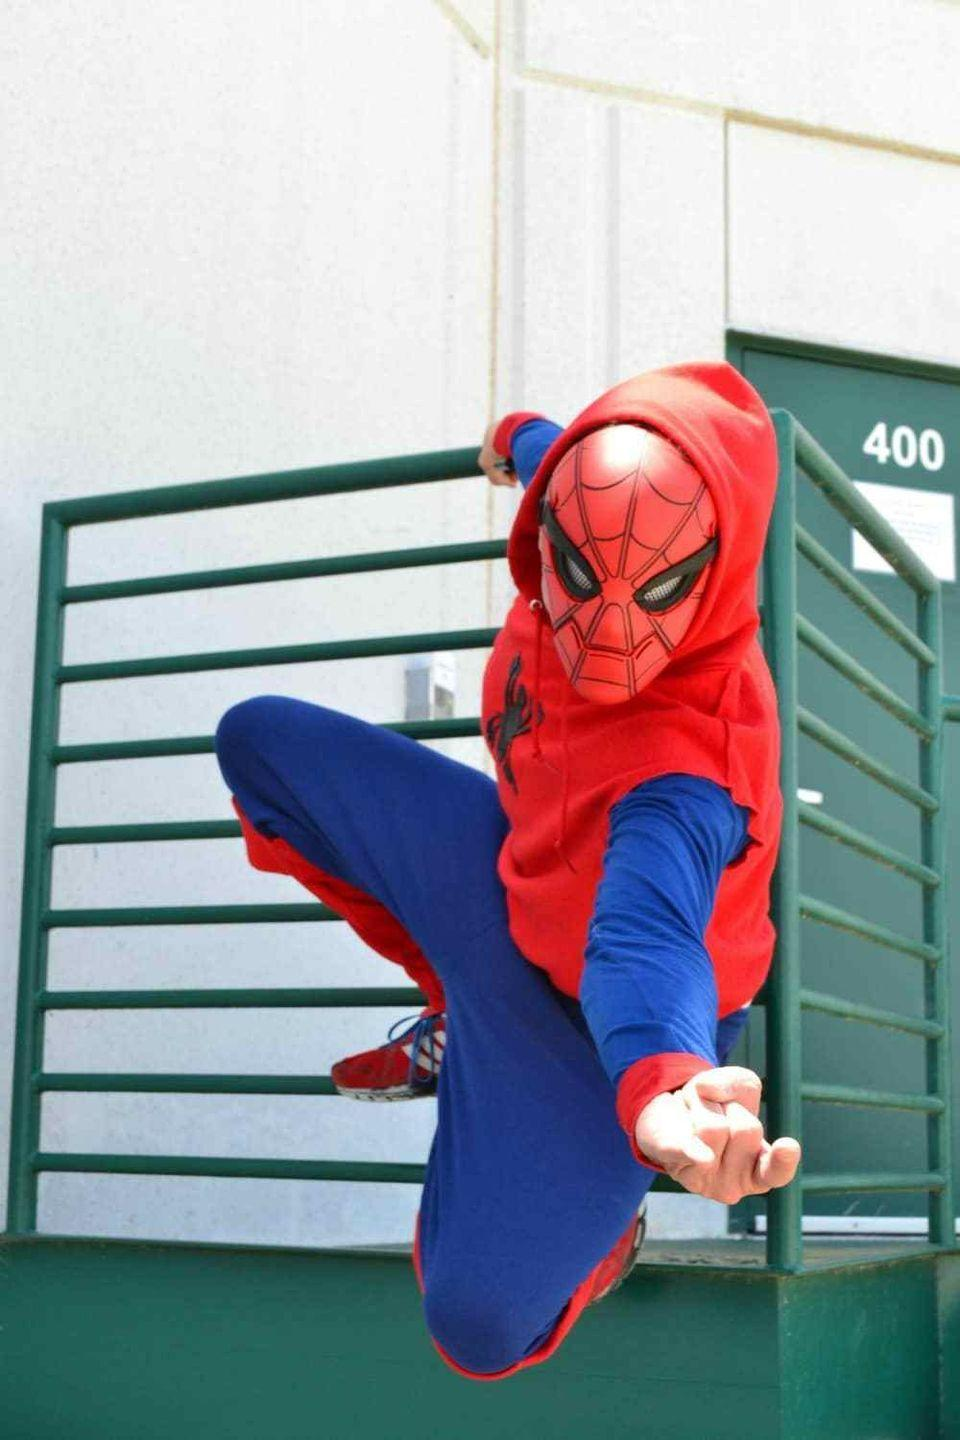 "<p>No need to get caught in a web of thread! This crafty costume requires absolutely no sewing.</p><p><strong>Get the tutorial at <a href=""https://lifeshehas.com/spider-man-homecoming-diy-costume-challenge/"" rel=""nofollow noopener"" target=""_blank"" data-ylk=""slk:Life She Has"" class=""link rapid-noclick-resp"">Life She Has</a>.</strong></p><p><strong><a class=""link rapid-noclick-resp"" href=""https://www.amazon.com/Kid-Nation-Fleece-Pullover-Sweatshirt/dp/B0778GR2SV/?tag=syn-yahoo-20&ascsubtag=%5Bartid%7C10050.g.21345654%5Bsrc%7Cyahoo-us"" rel=""nofollow noopener"" target=""_blank"" data-ylk=""slk:SHOP SWEATSHIRT"">SHOP SWEATSHIRT</a></strong></p>"